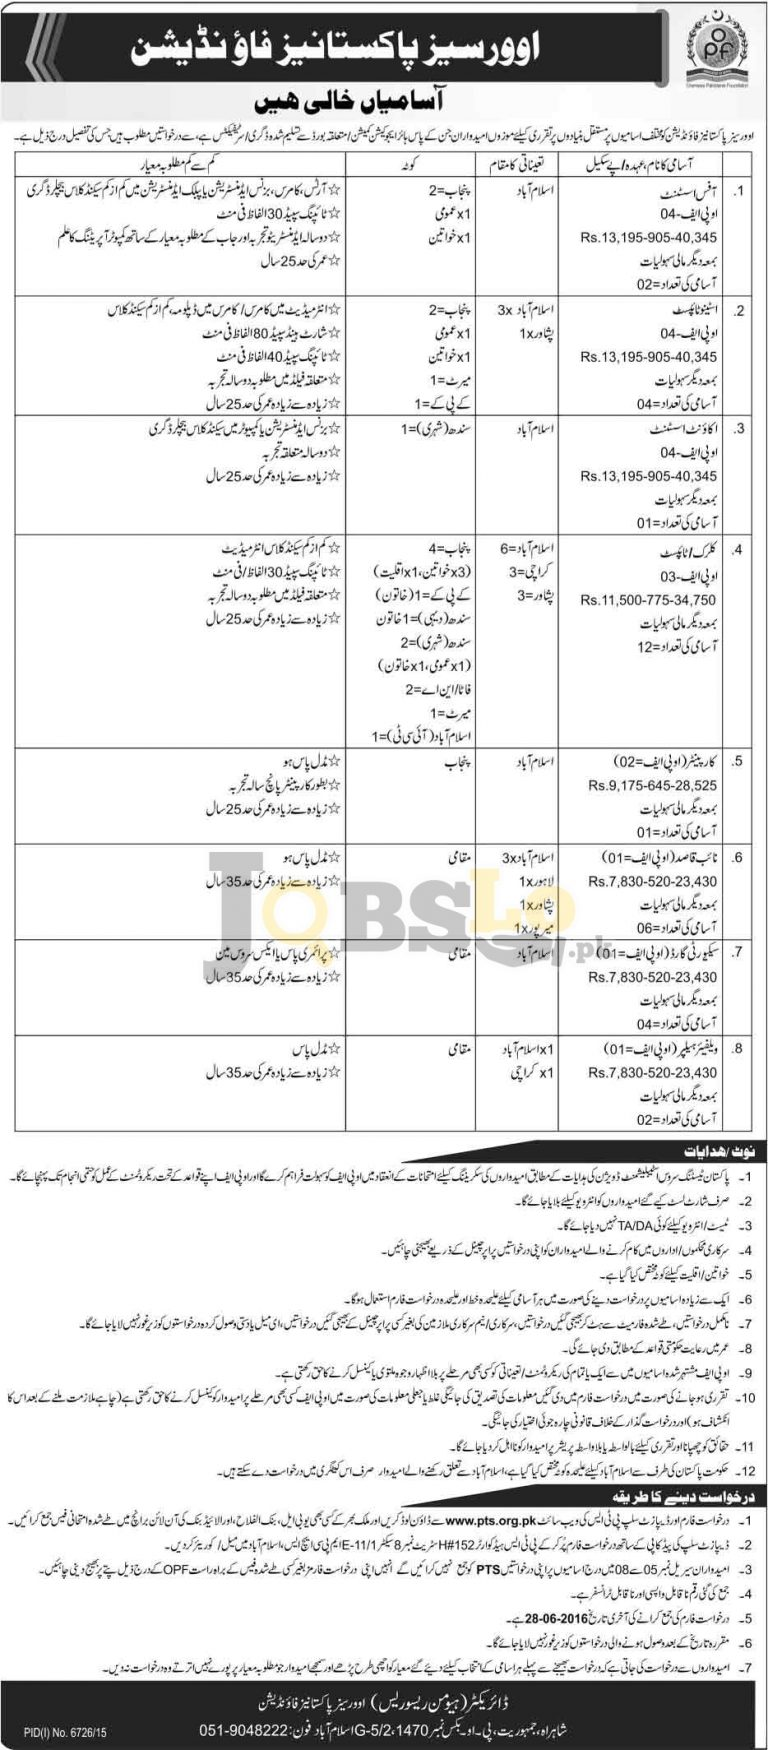 Overseas Pakistanis Foundation OPF Jobs 2016 PTS Test & Roll Number Slip Download